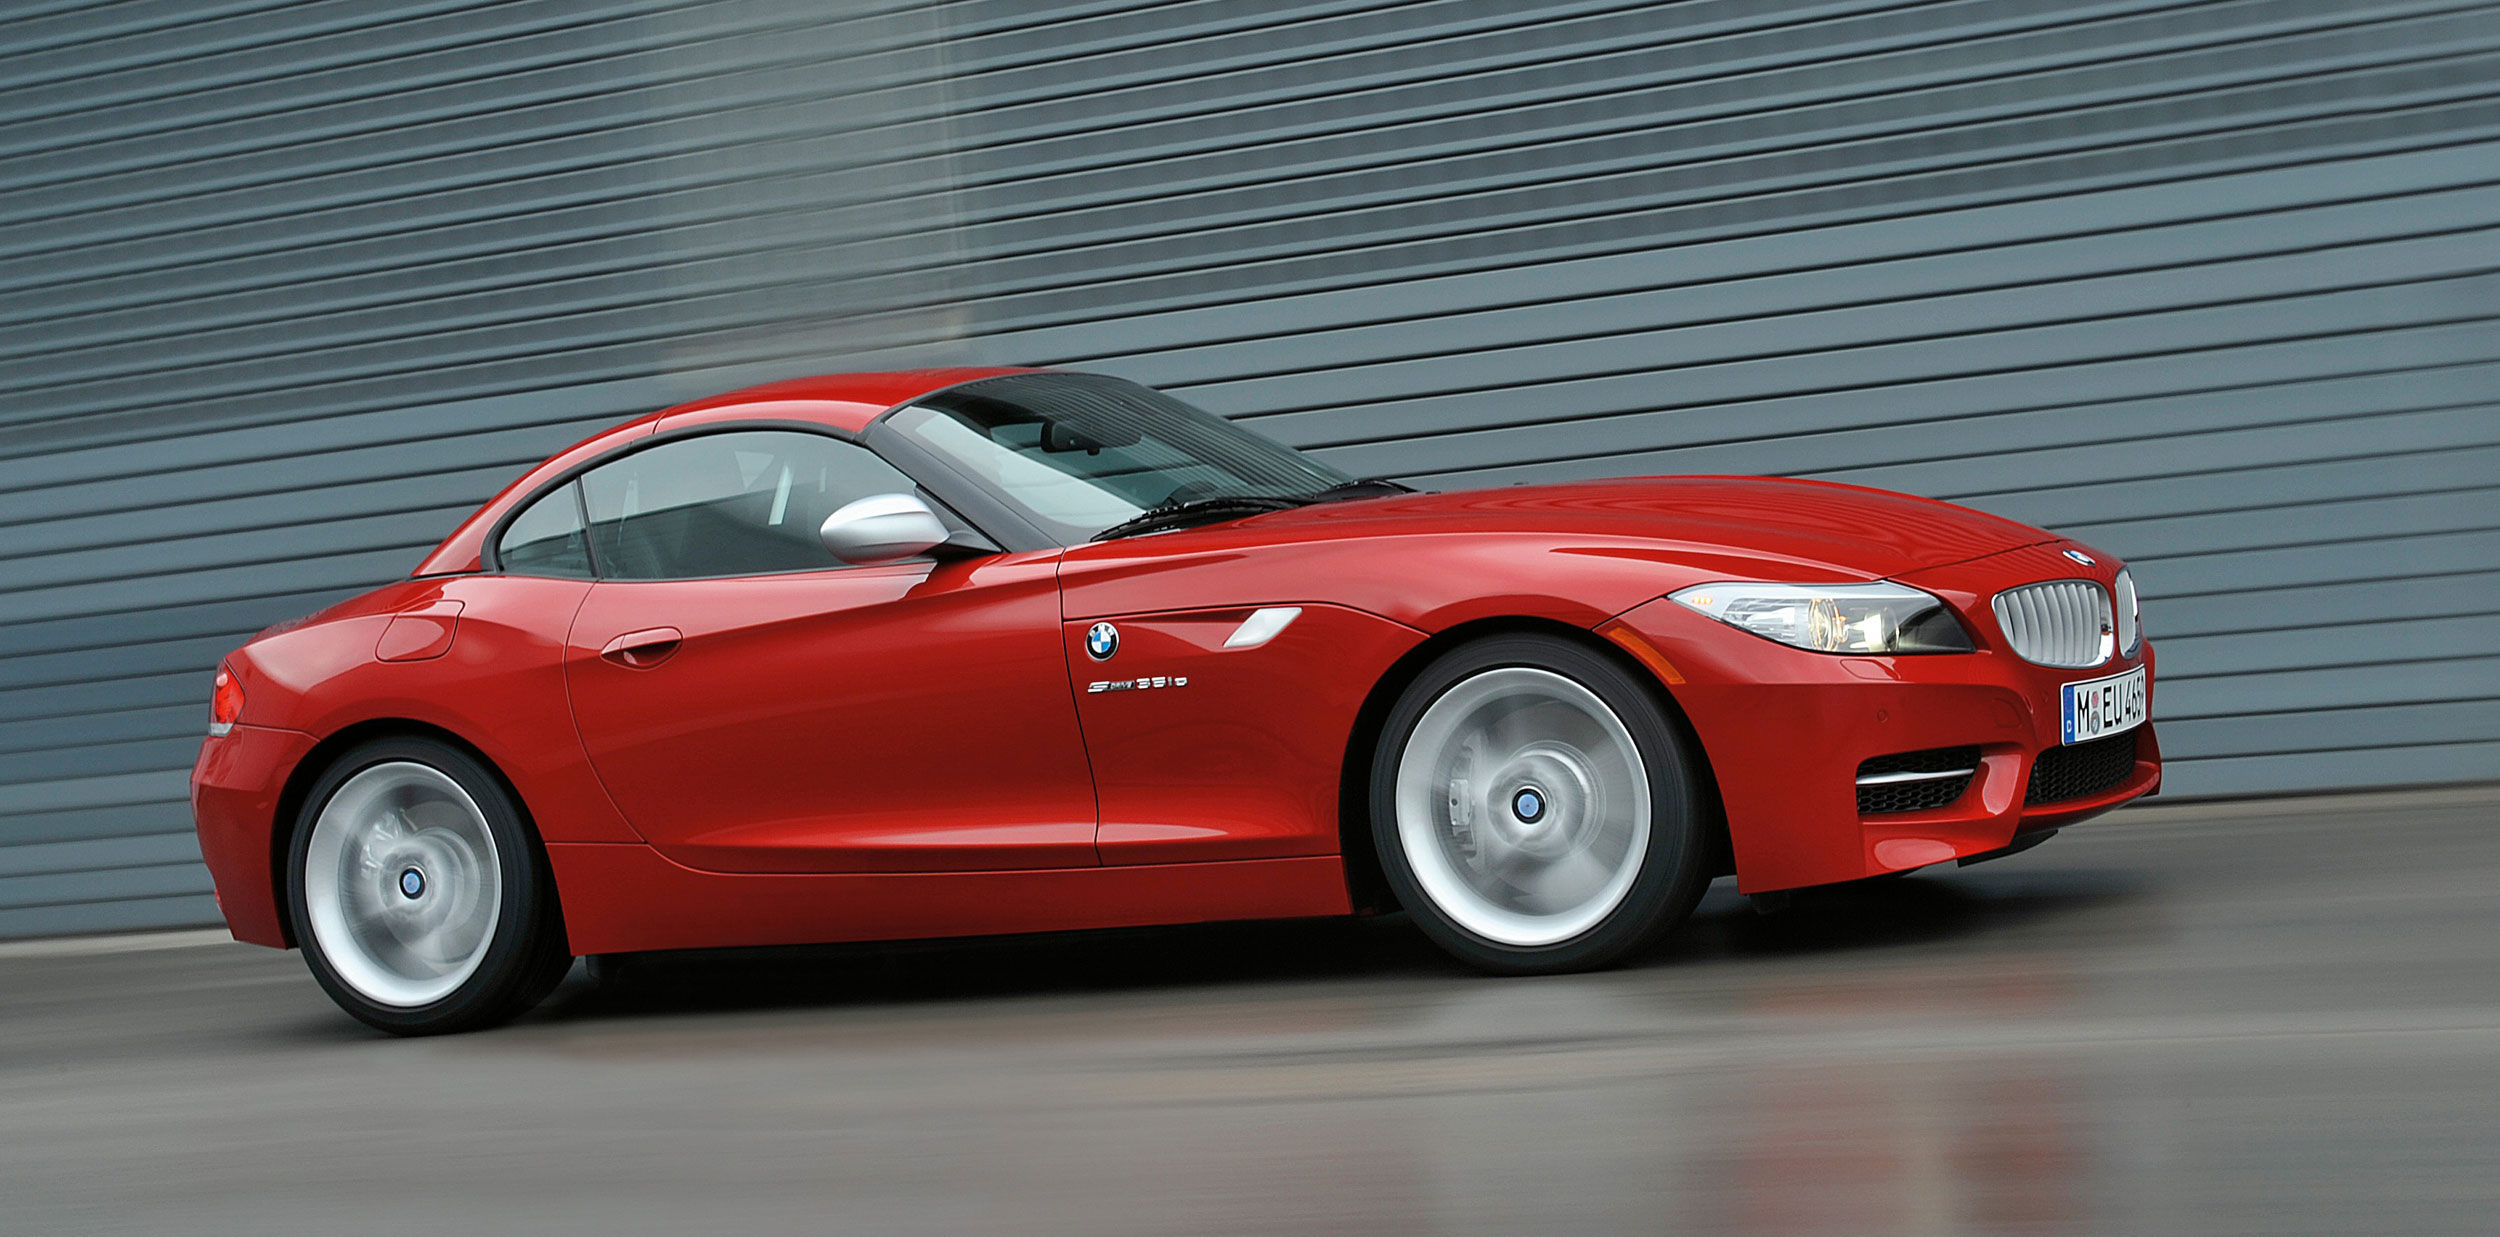 Bmw Z4 Next Gen Is In The Works And Due In 2015